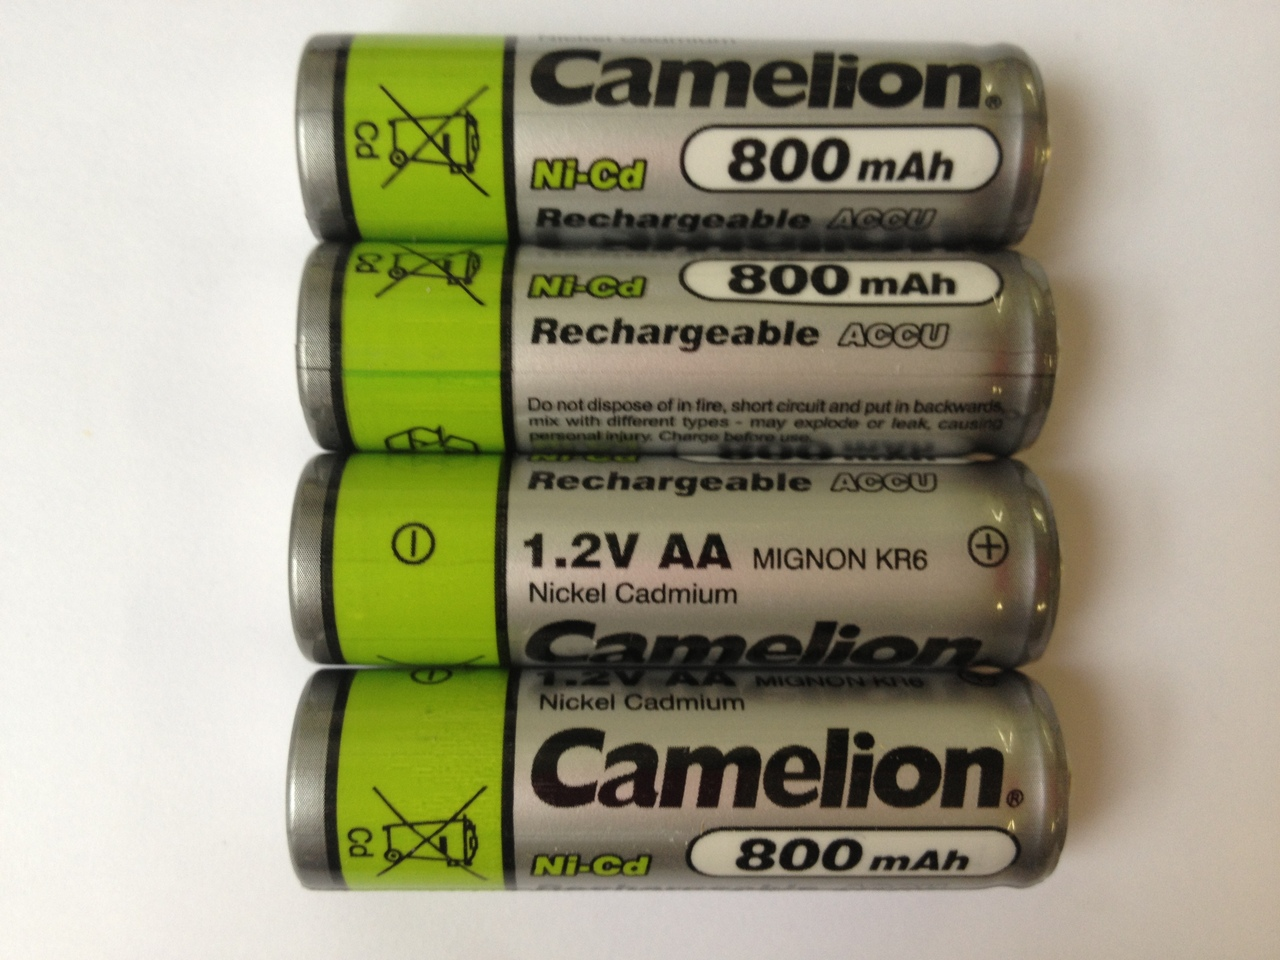 Camelion AA Rechargeable NiCD Batteries 800mAH 8 Pack + FREE SHIPPING!